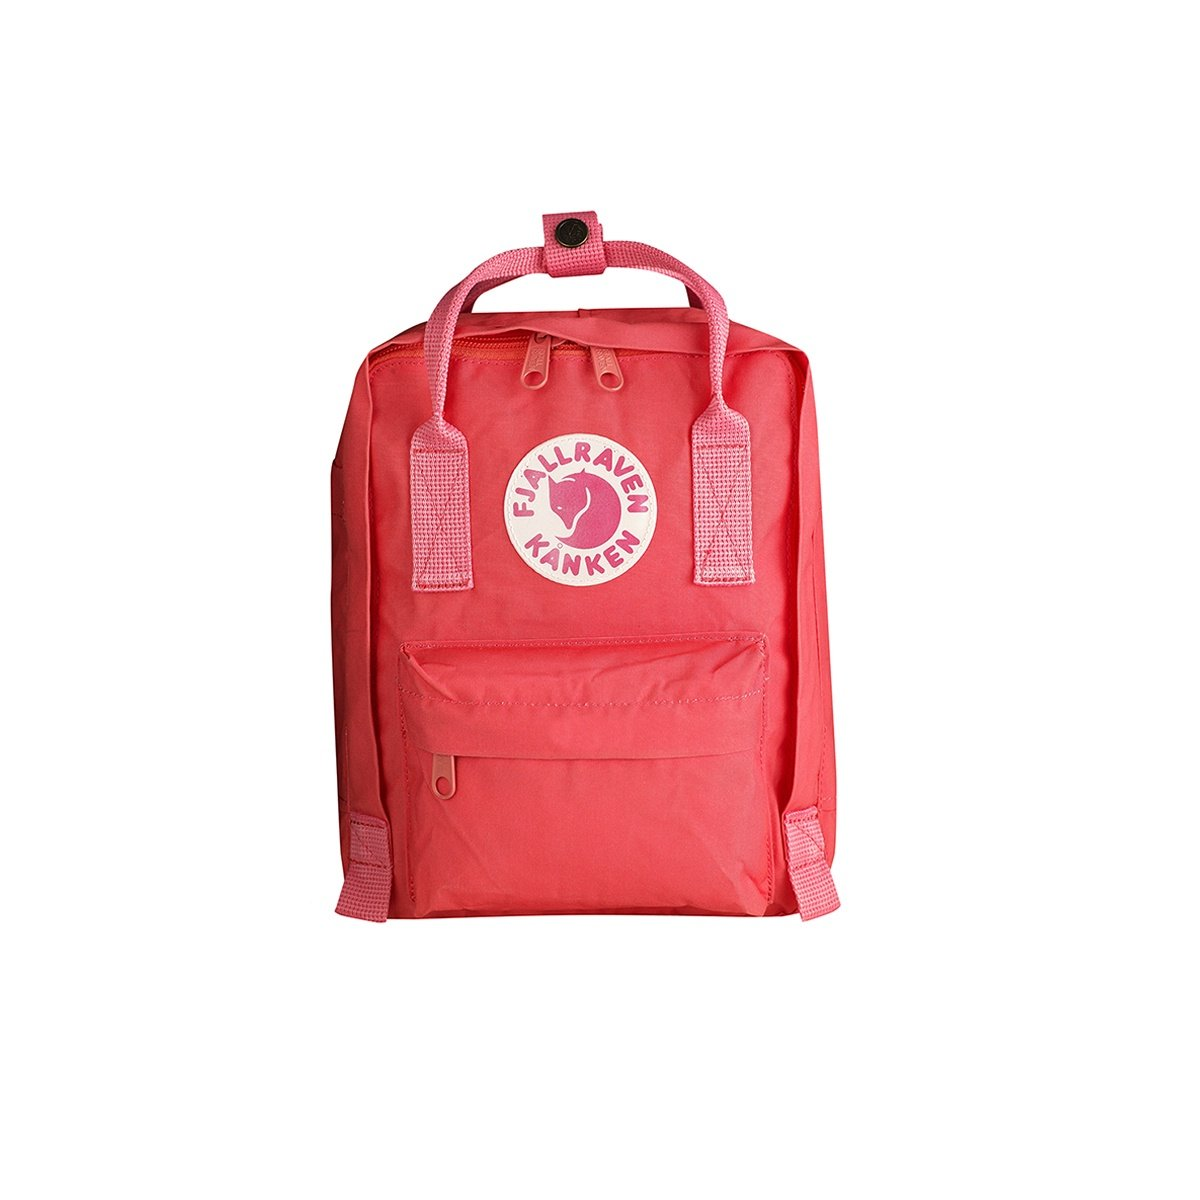 Kanken Backpack - Mini Peach Pink